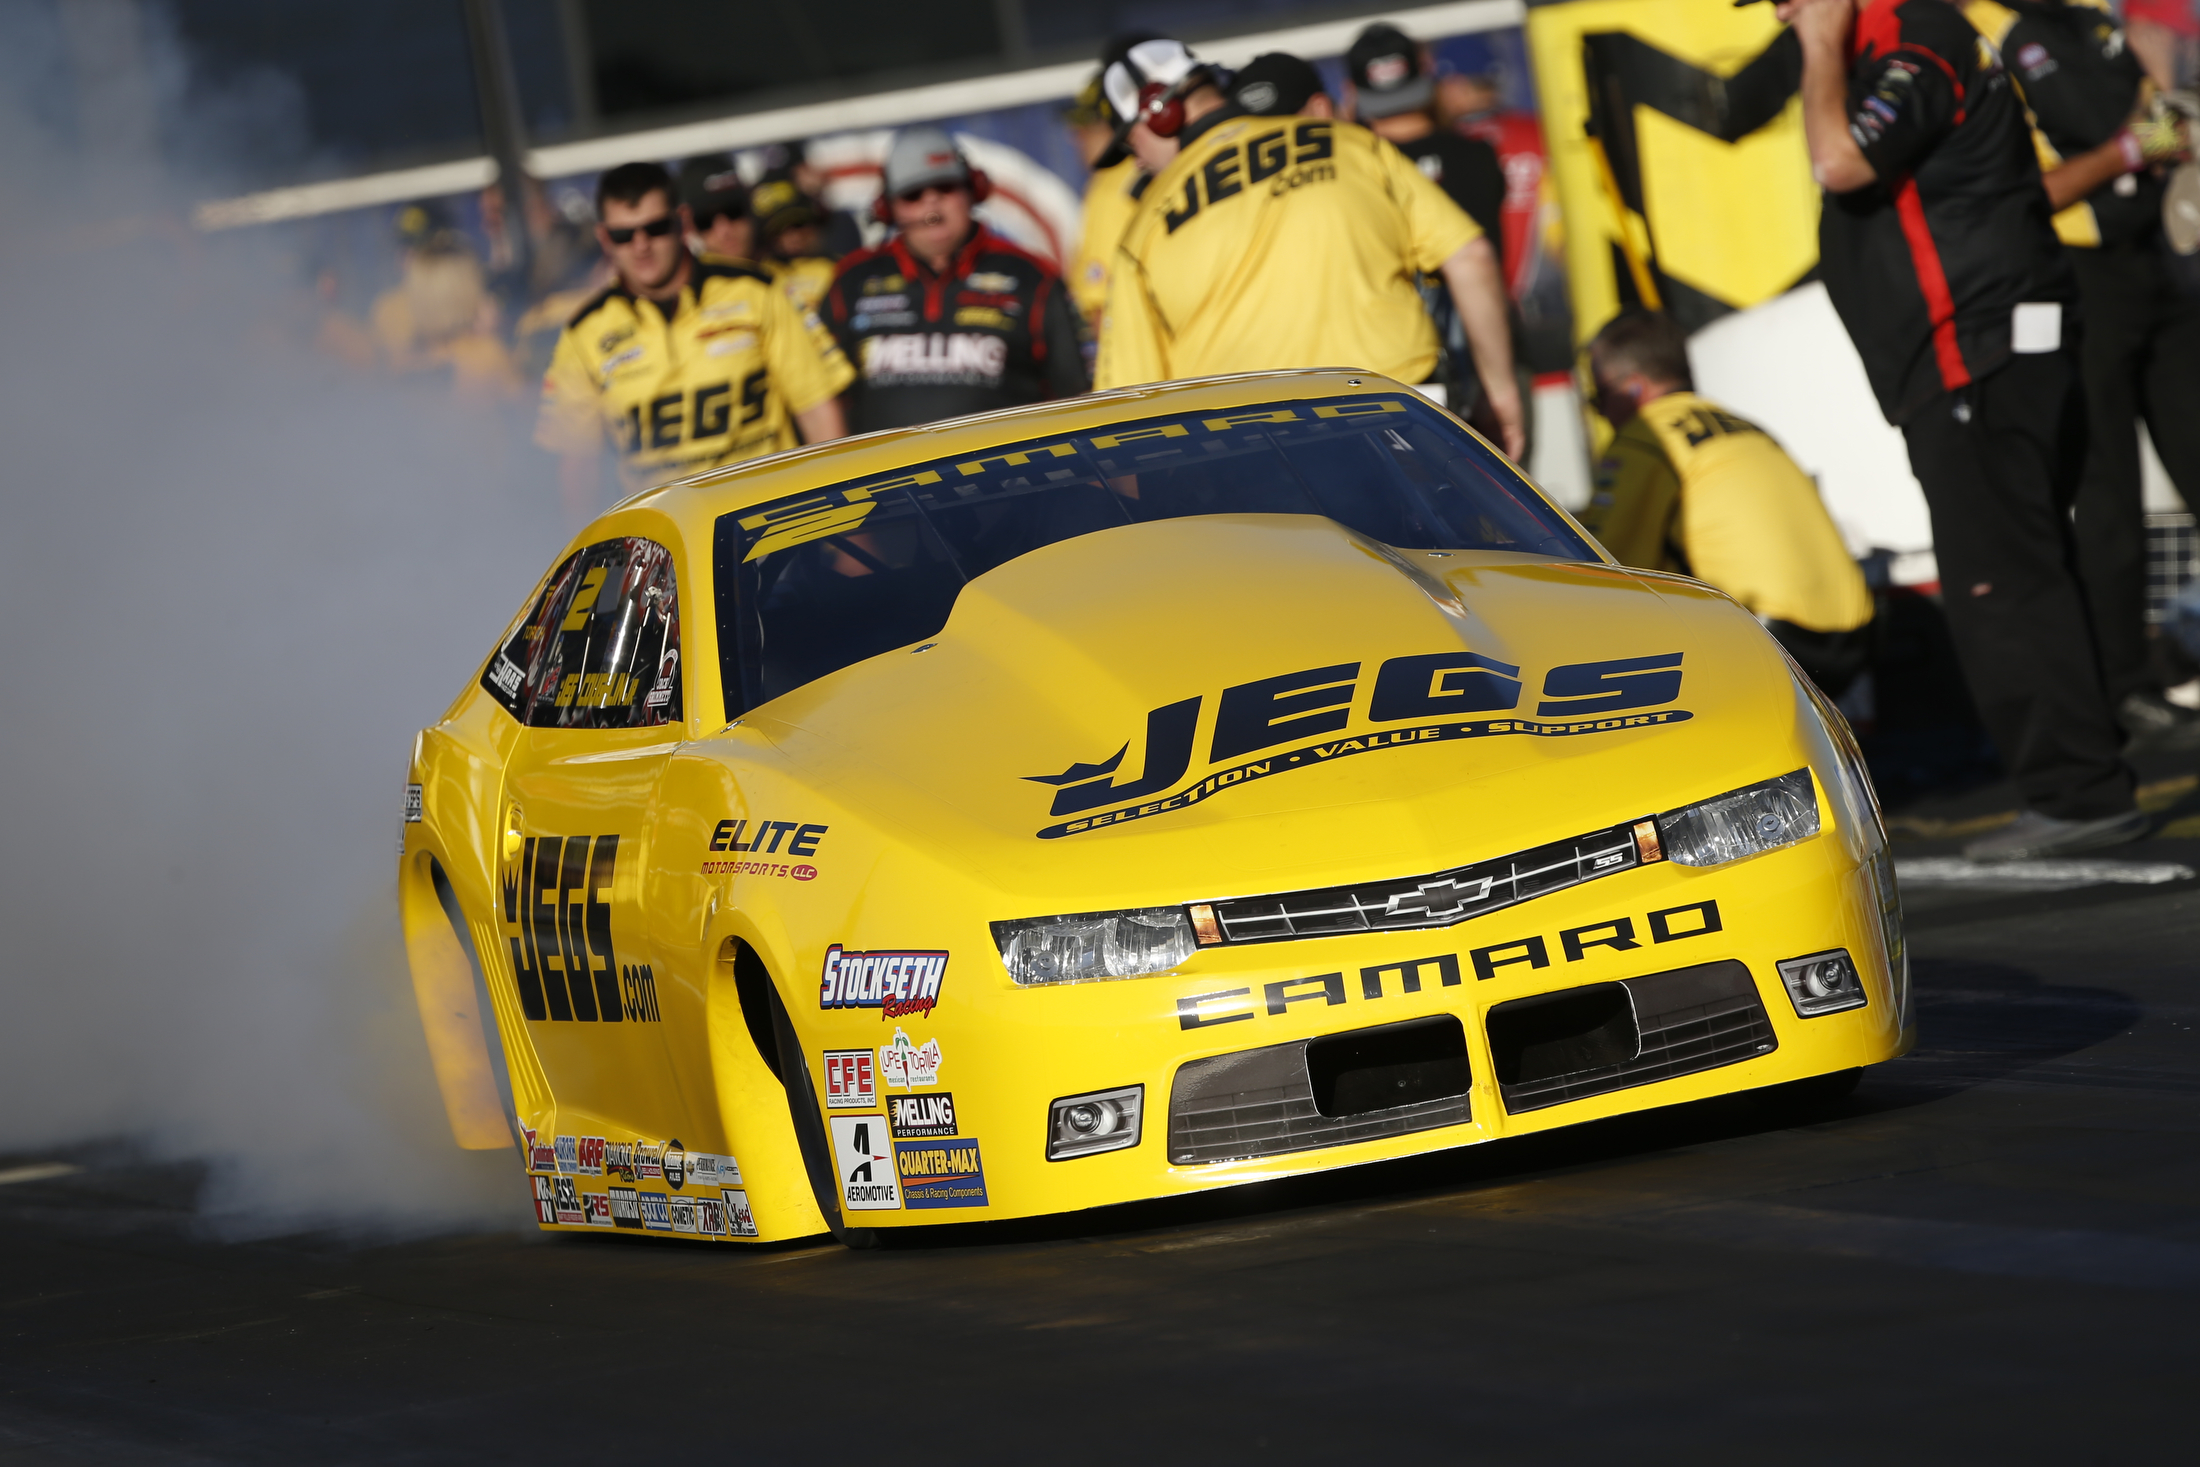 JEGS/Elite Performance Pro Stock driver Jeg Coughlin Jr. racing on Sunday at the Auto Club NHRA Finals